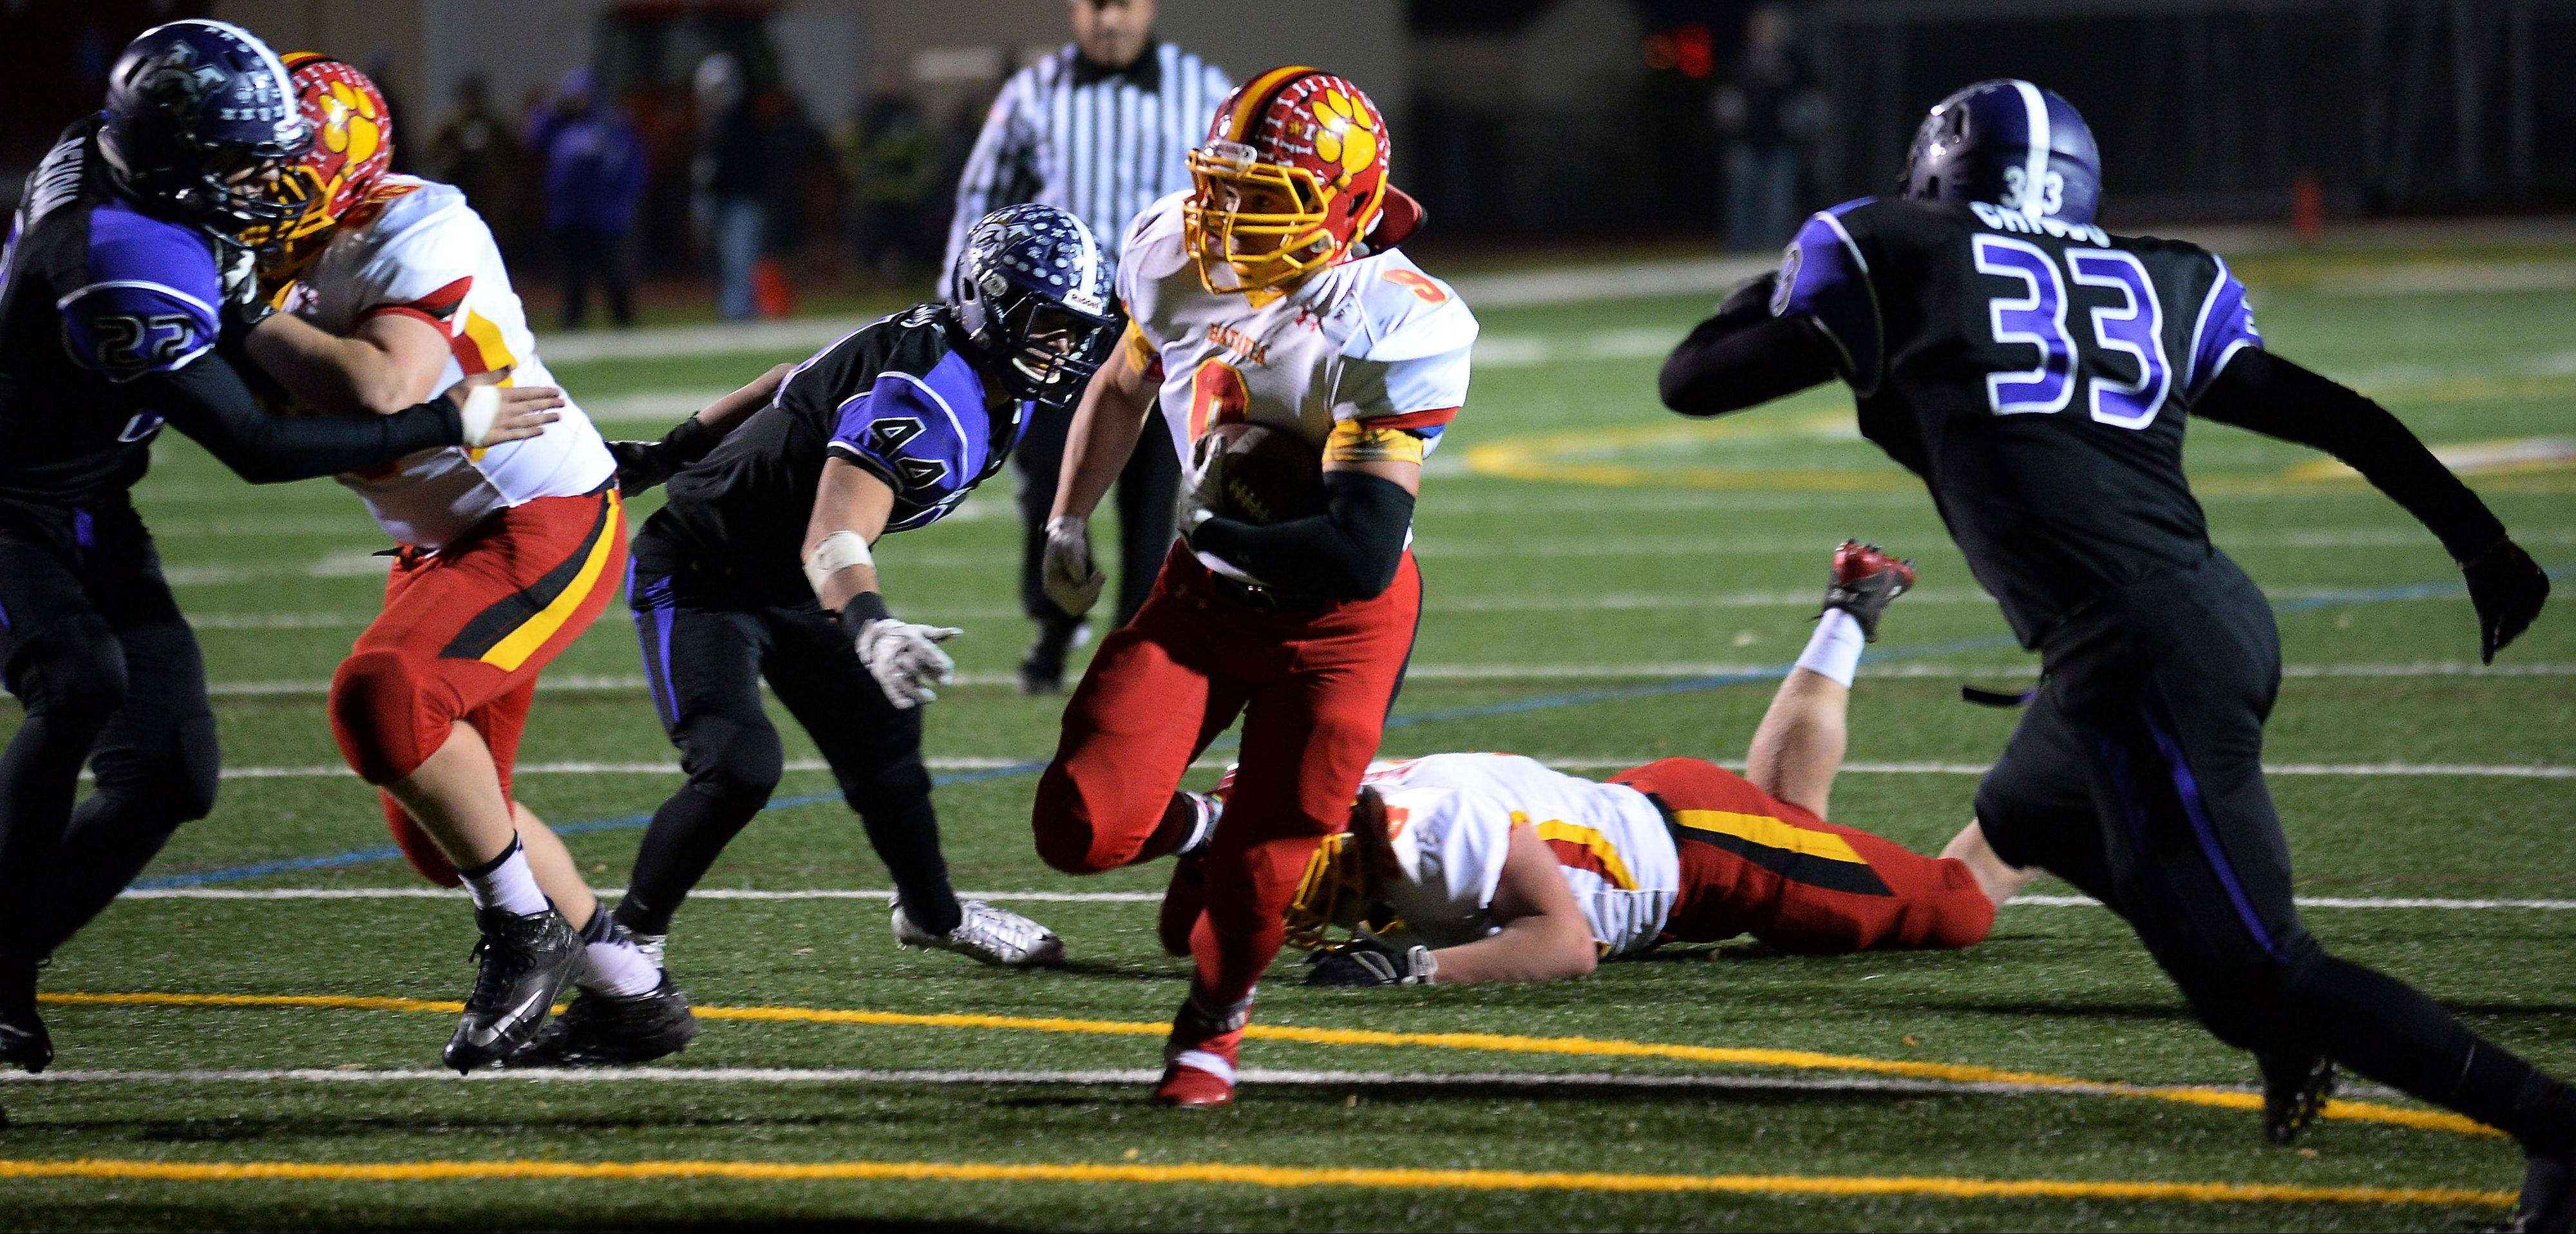 Batavia's Anthony Moneghini runs past Rolling Meadows' Nico Chiodo in the fourth quarter for a touchdown in the Bulldogs' 48-13 win last Saturday.